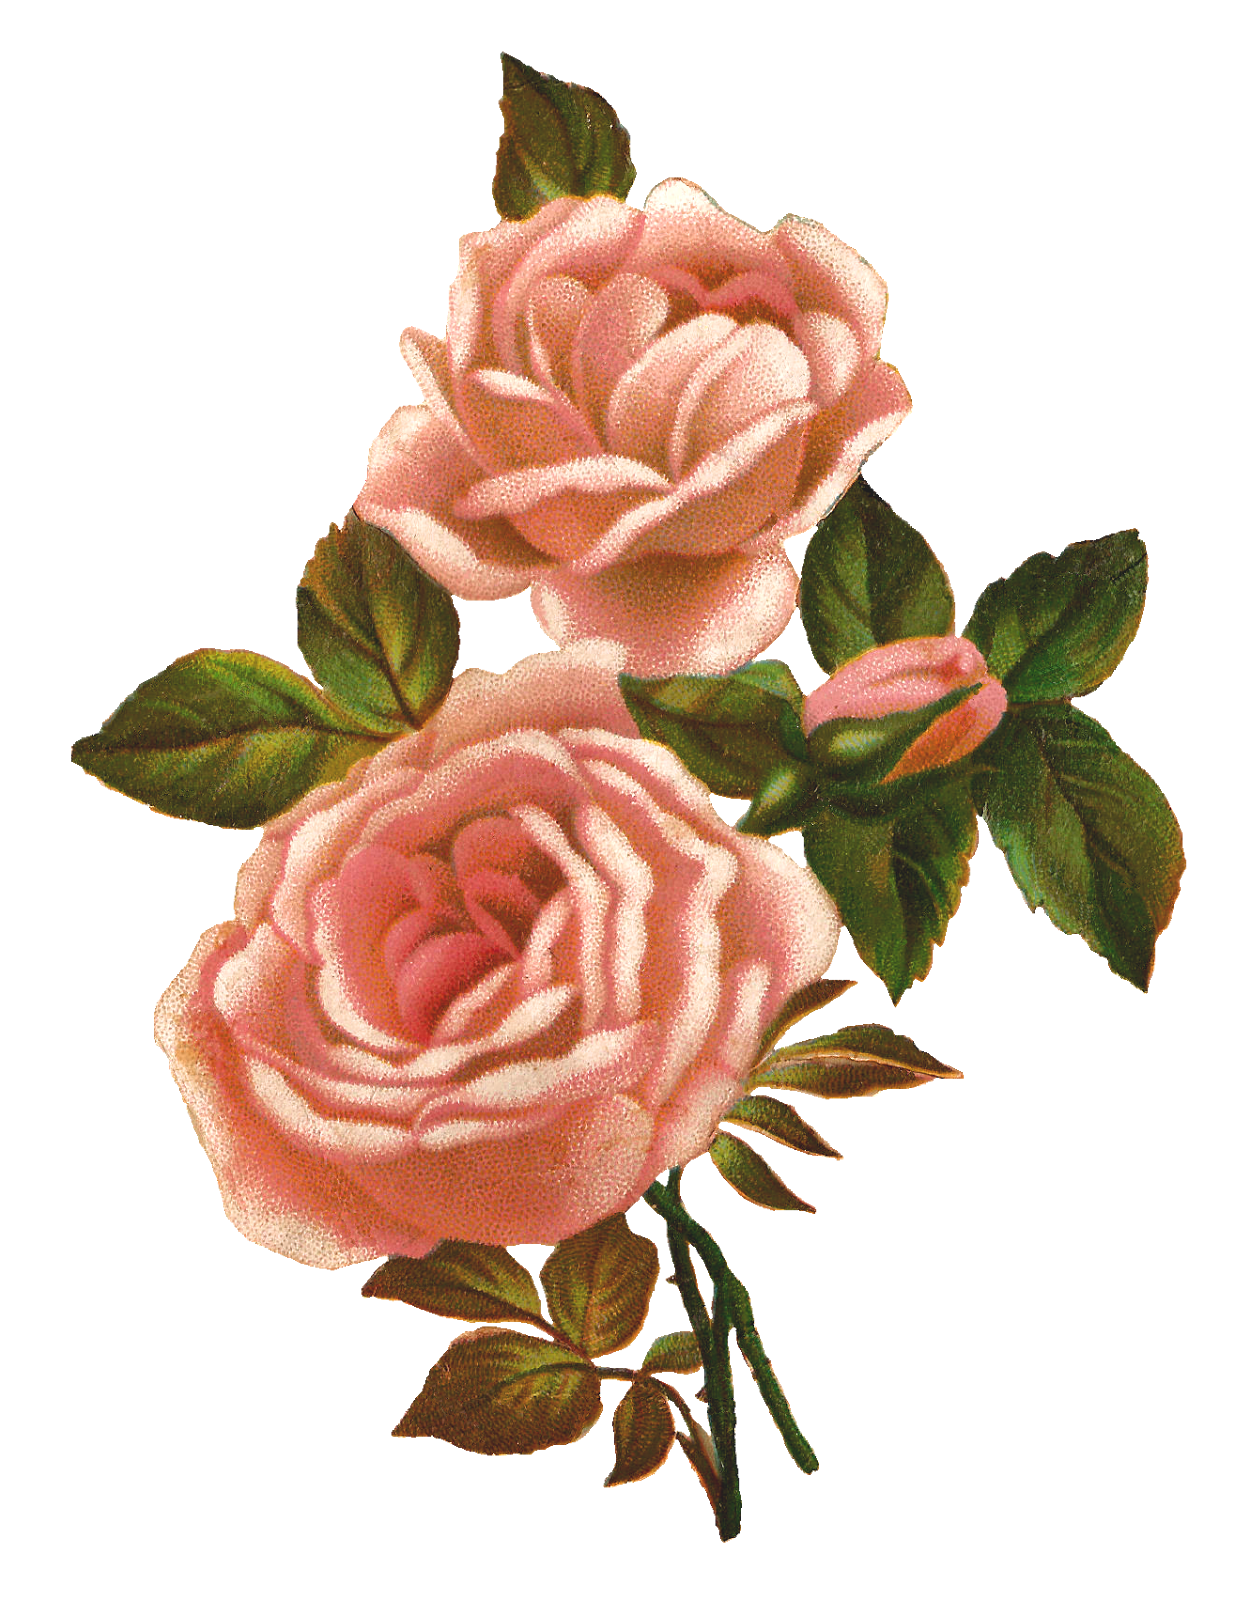 Clipart roses shabby chic. Antique images pink rose